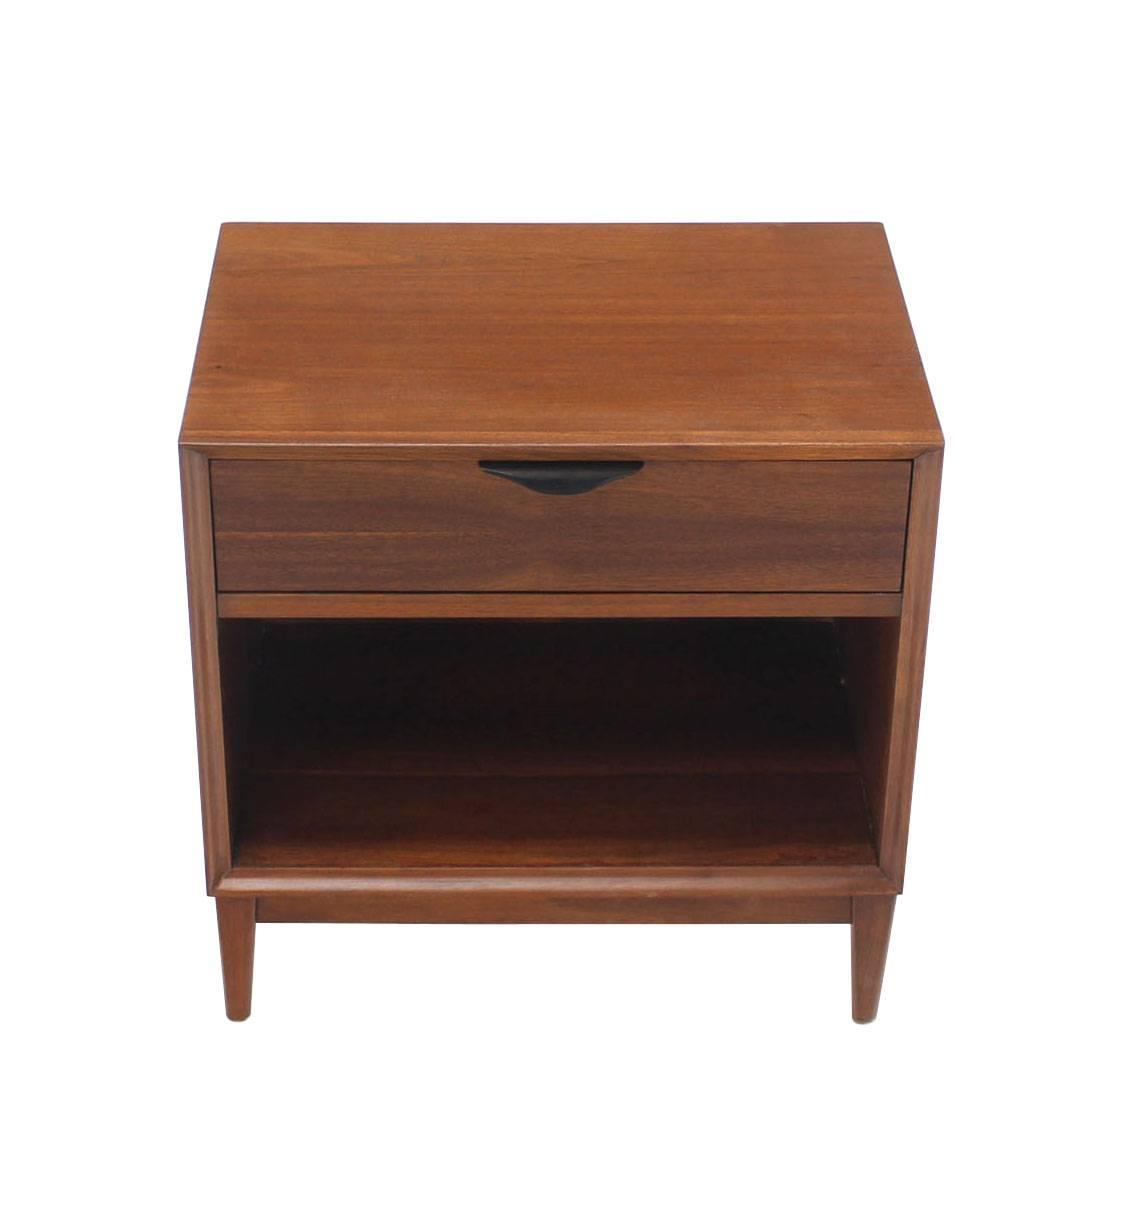 Mid-Century Modern Walnut End Table or Nightstand For Sale at 1stdibs